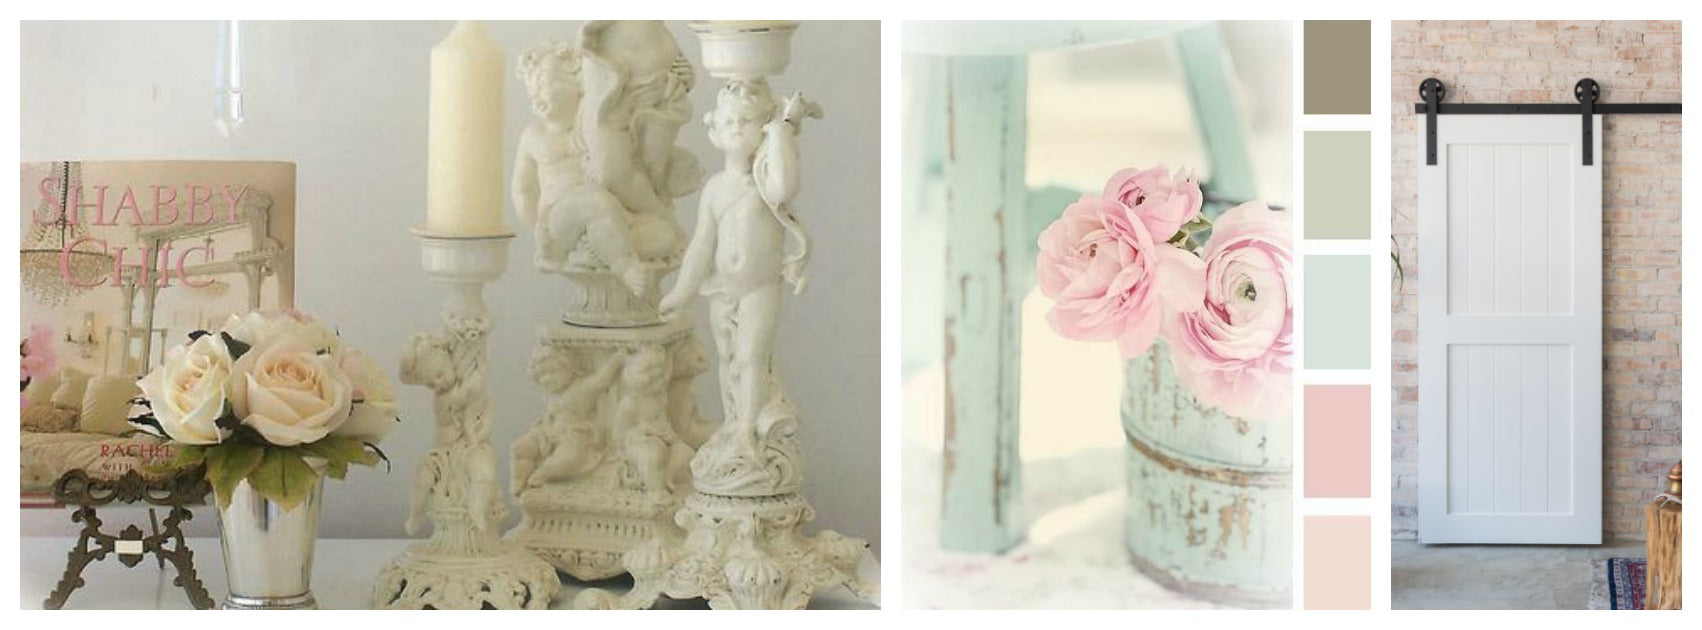 10 Unique Shabby Chic Ideas For Your Bedroom